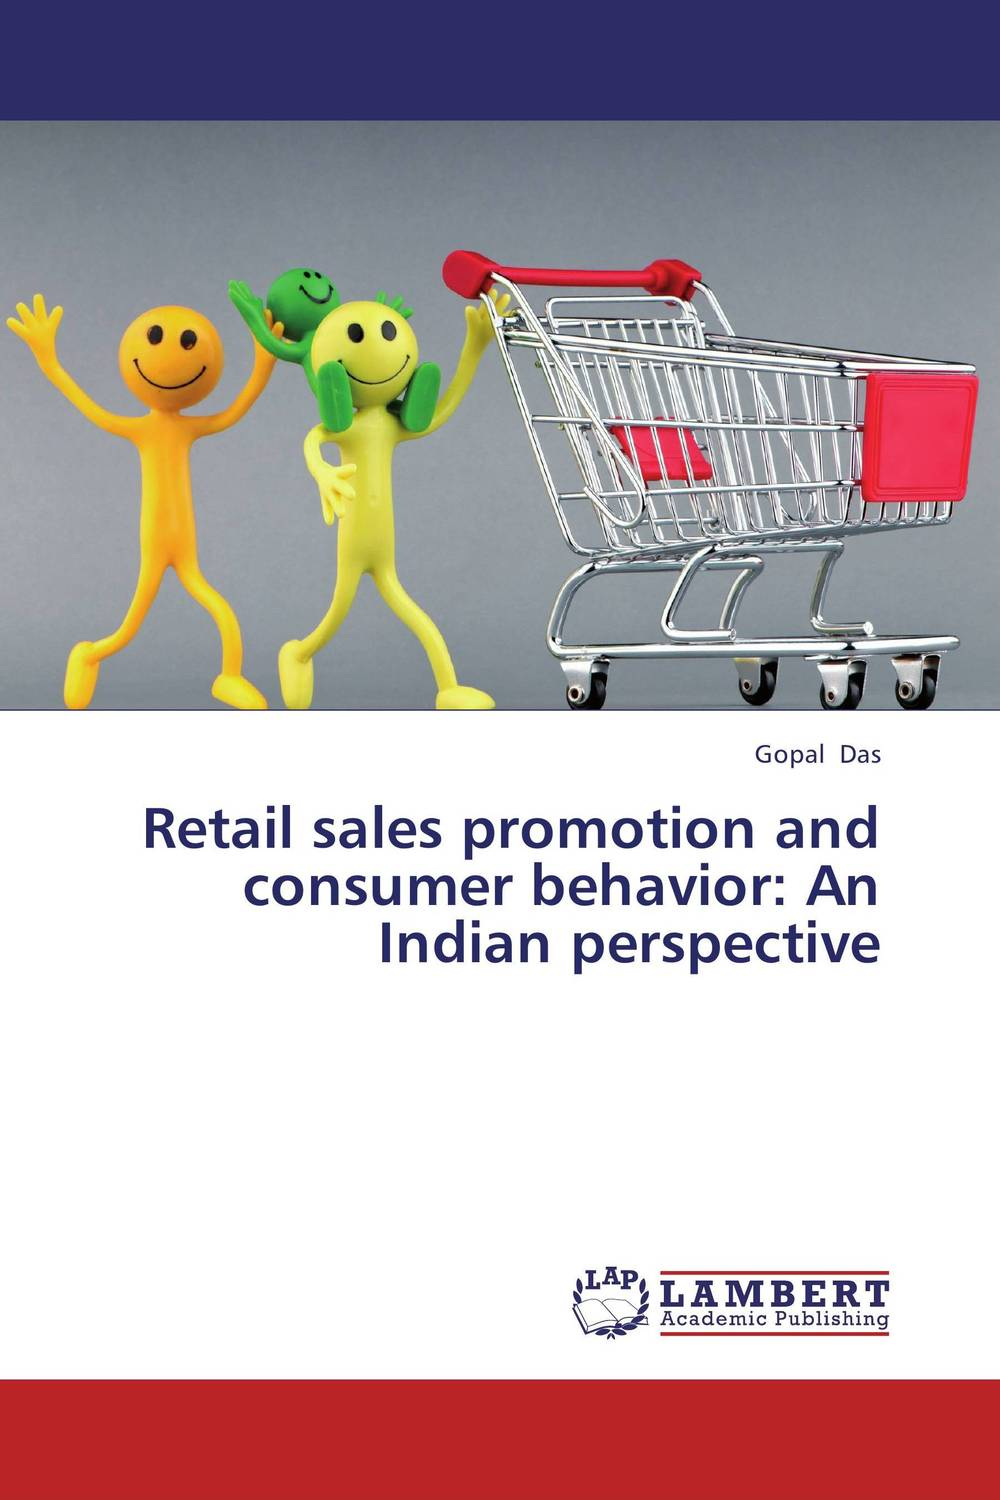 Retail sales promotion and consumer behavior: An Indian perspective ripudaman singh gurkamal singh and amandeep kaur brea indian consumer behaviour